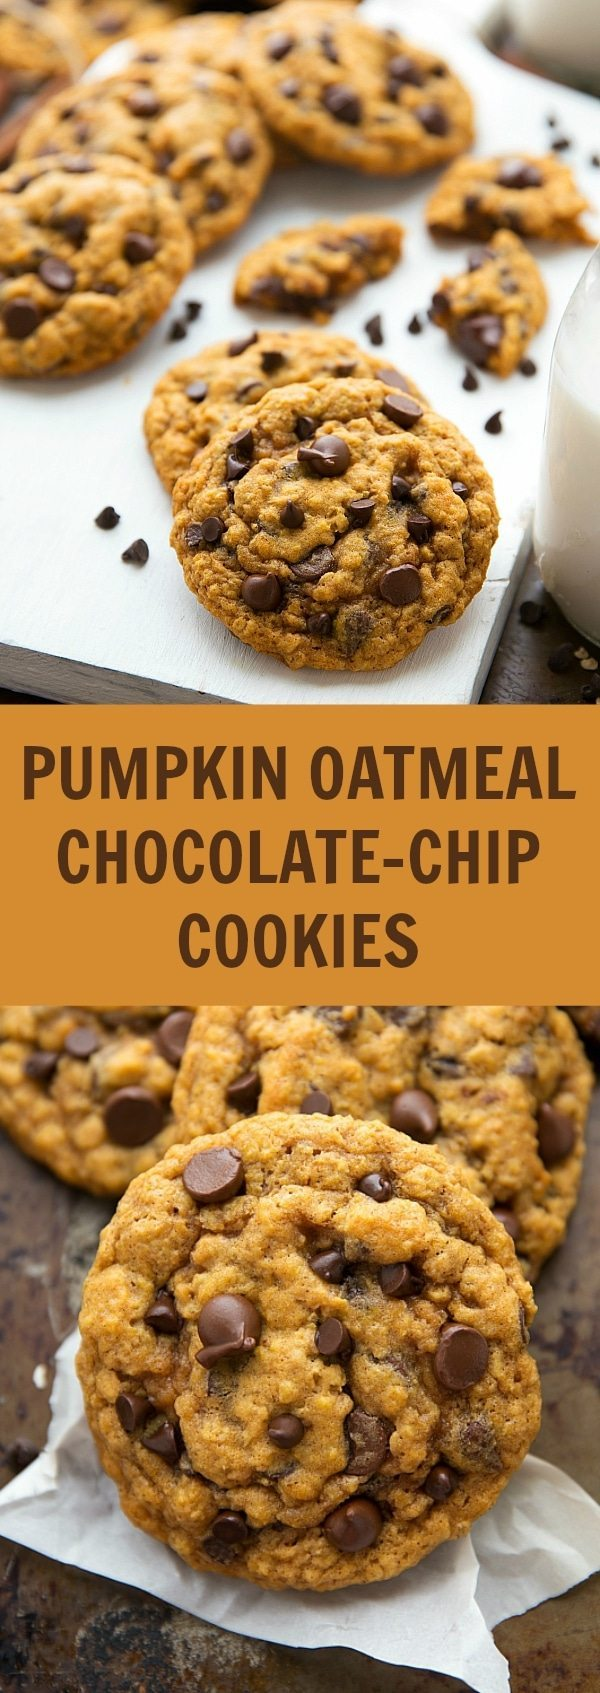 Pumpkin Oatmeal Chocolate-Chip Cookies (Non-Cakey Version) | Chelsea's ...